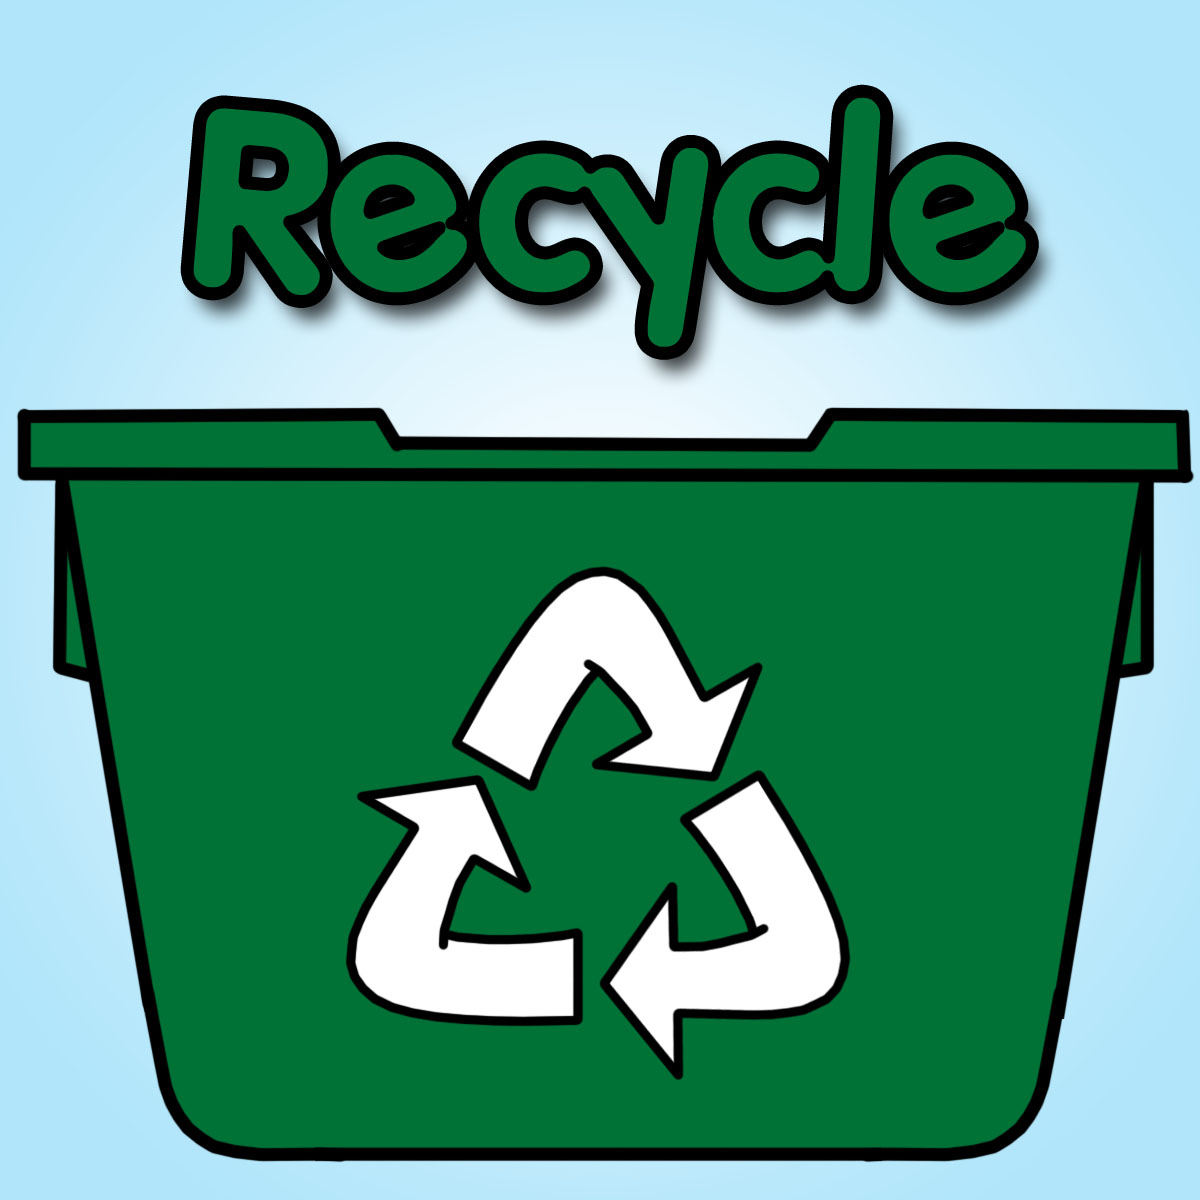 Recycle clipart green team. Overview